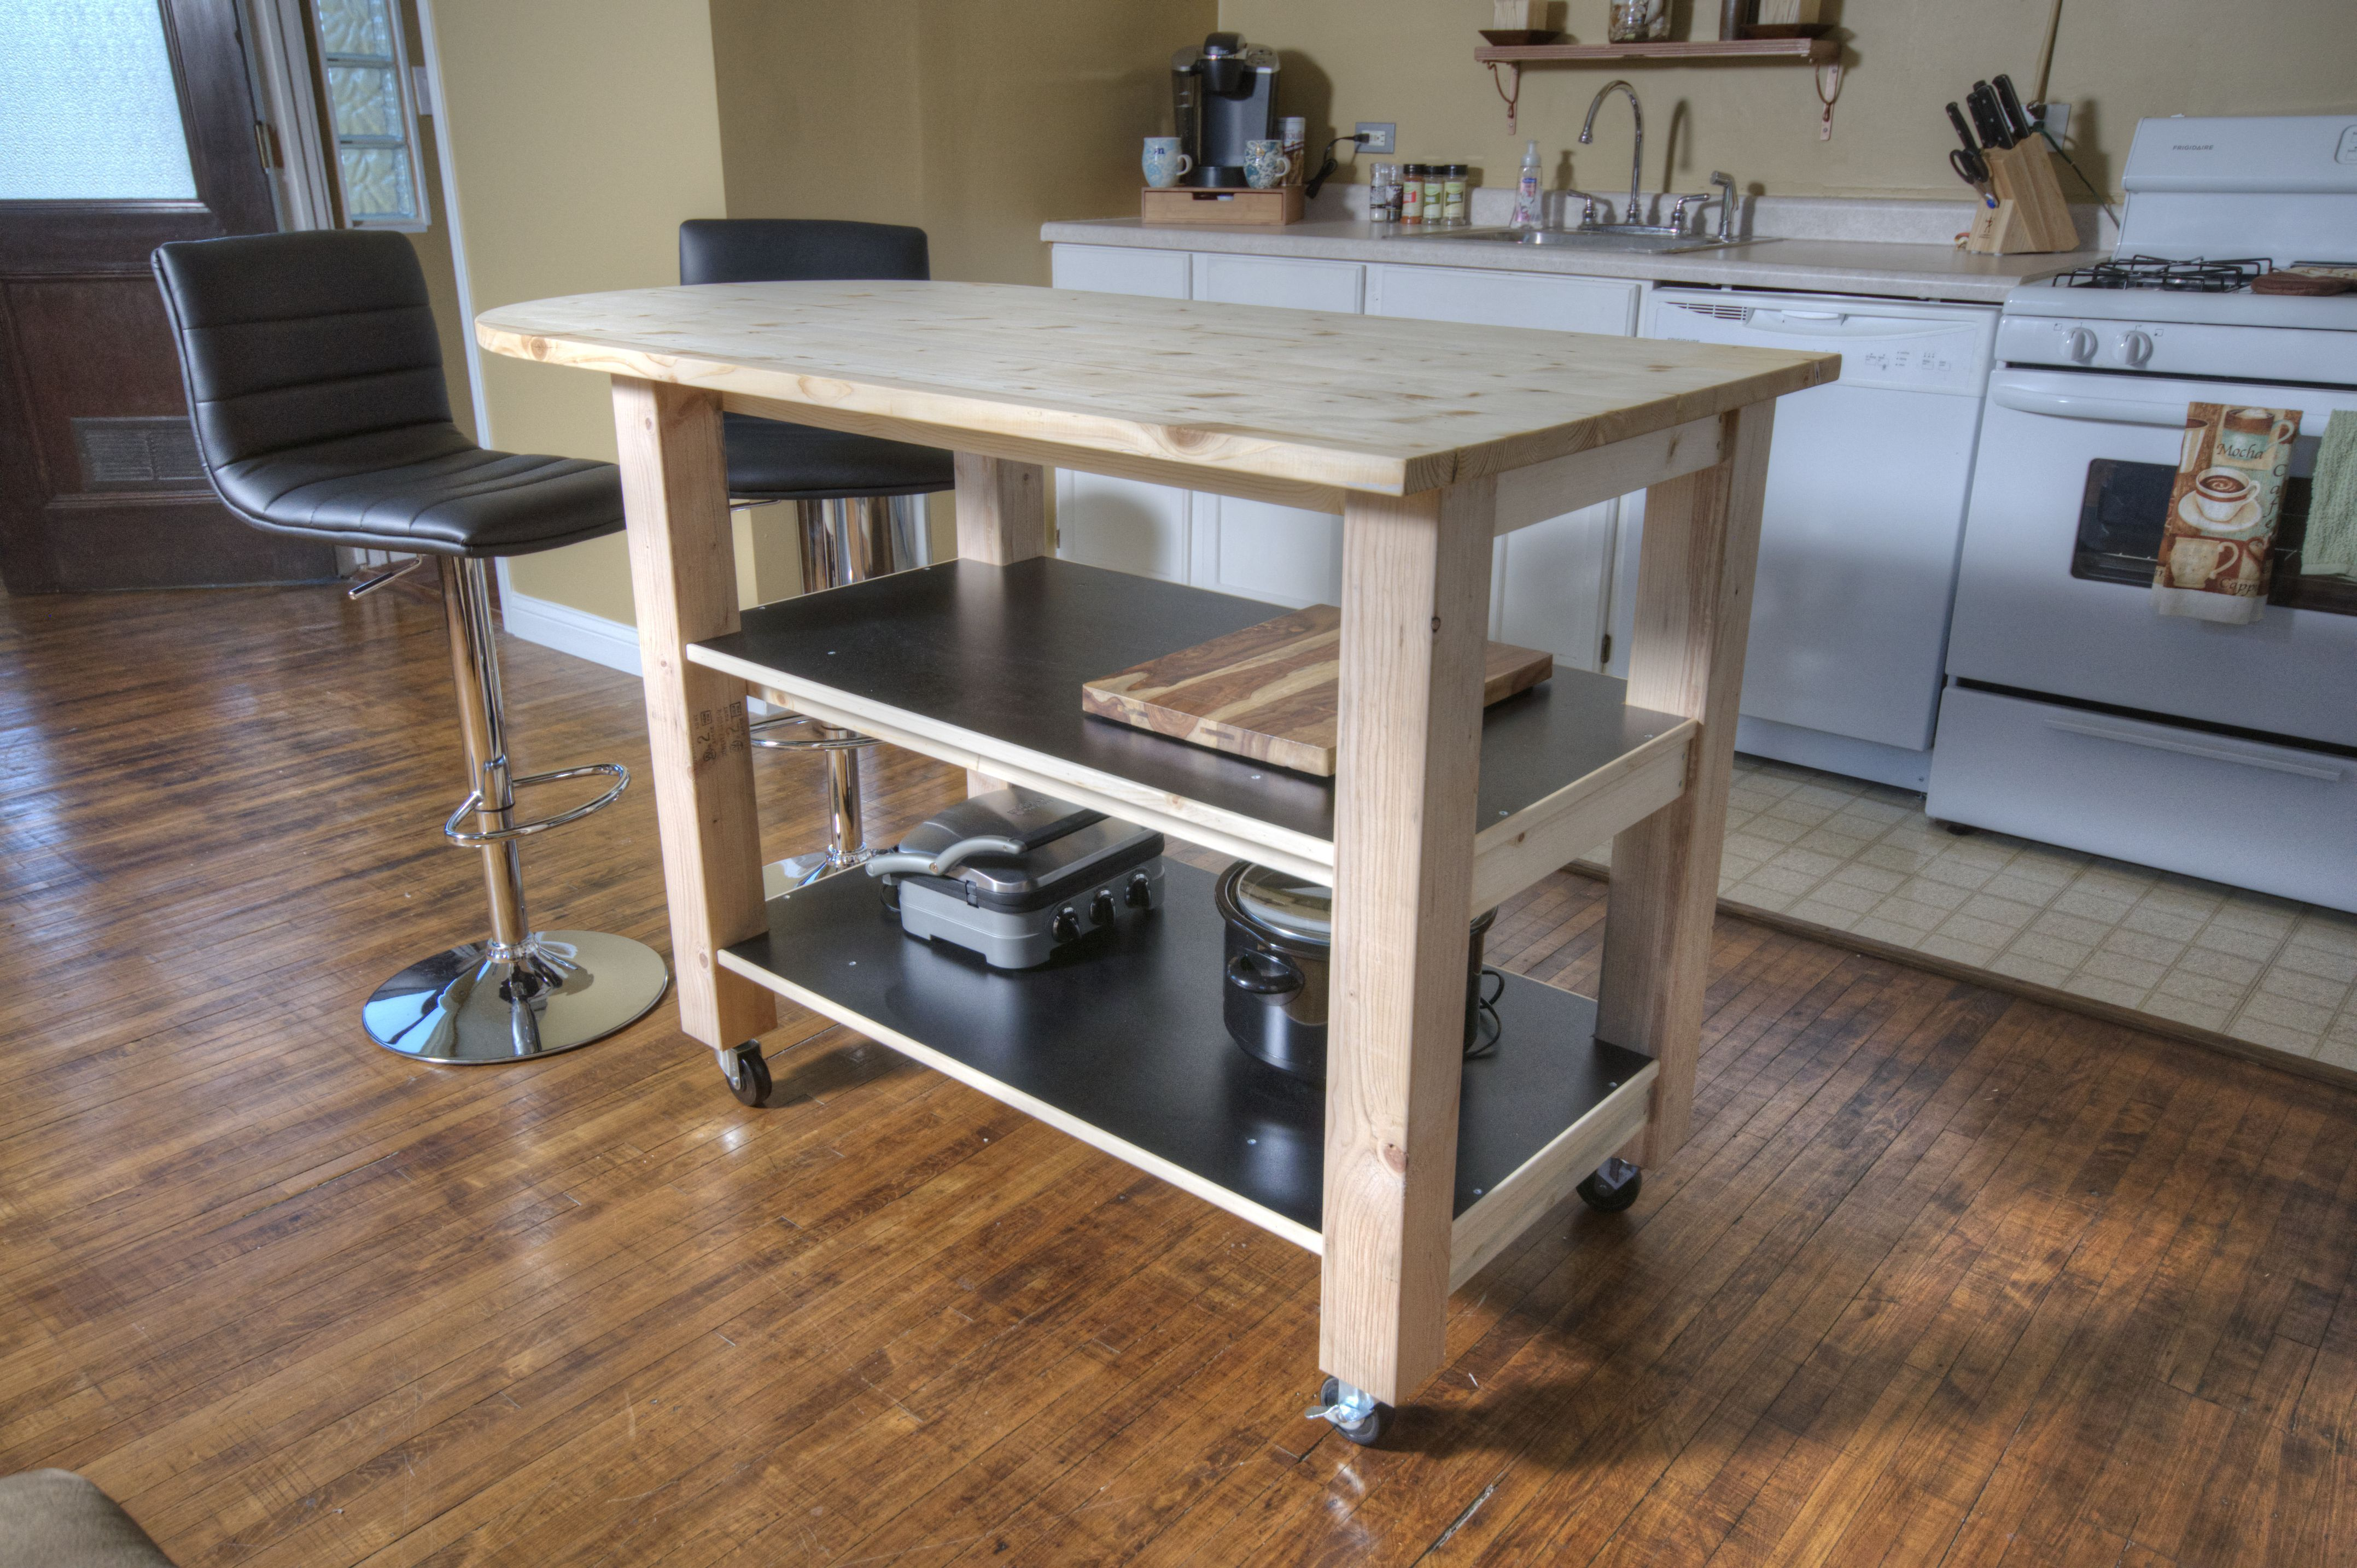 Movable Kitchen Islands Plans How To Build Diy Kitchen Island On Wheels Diy How To